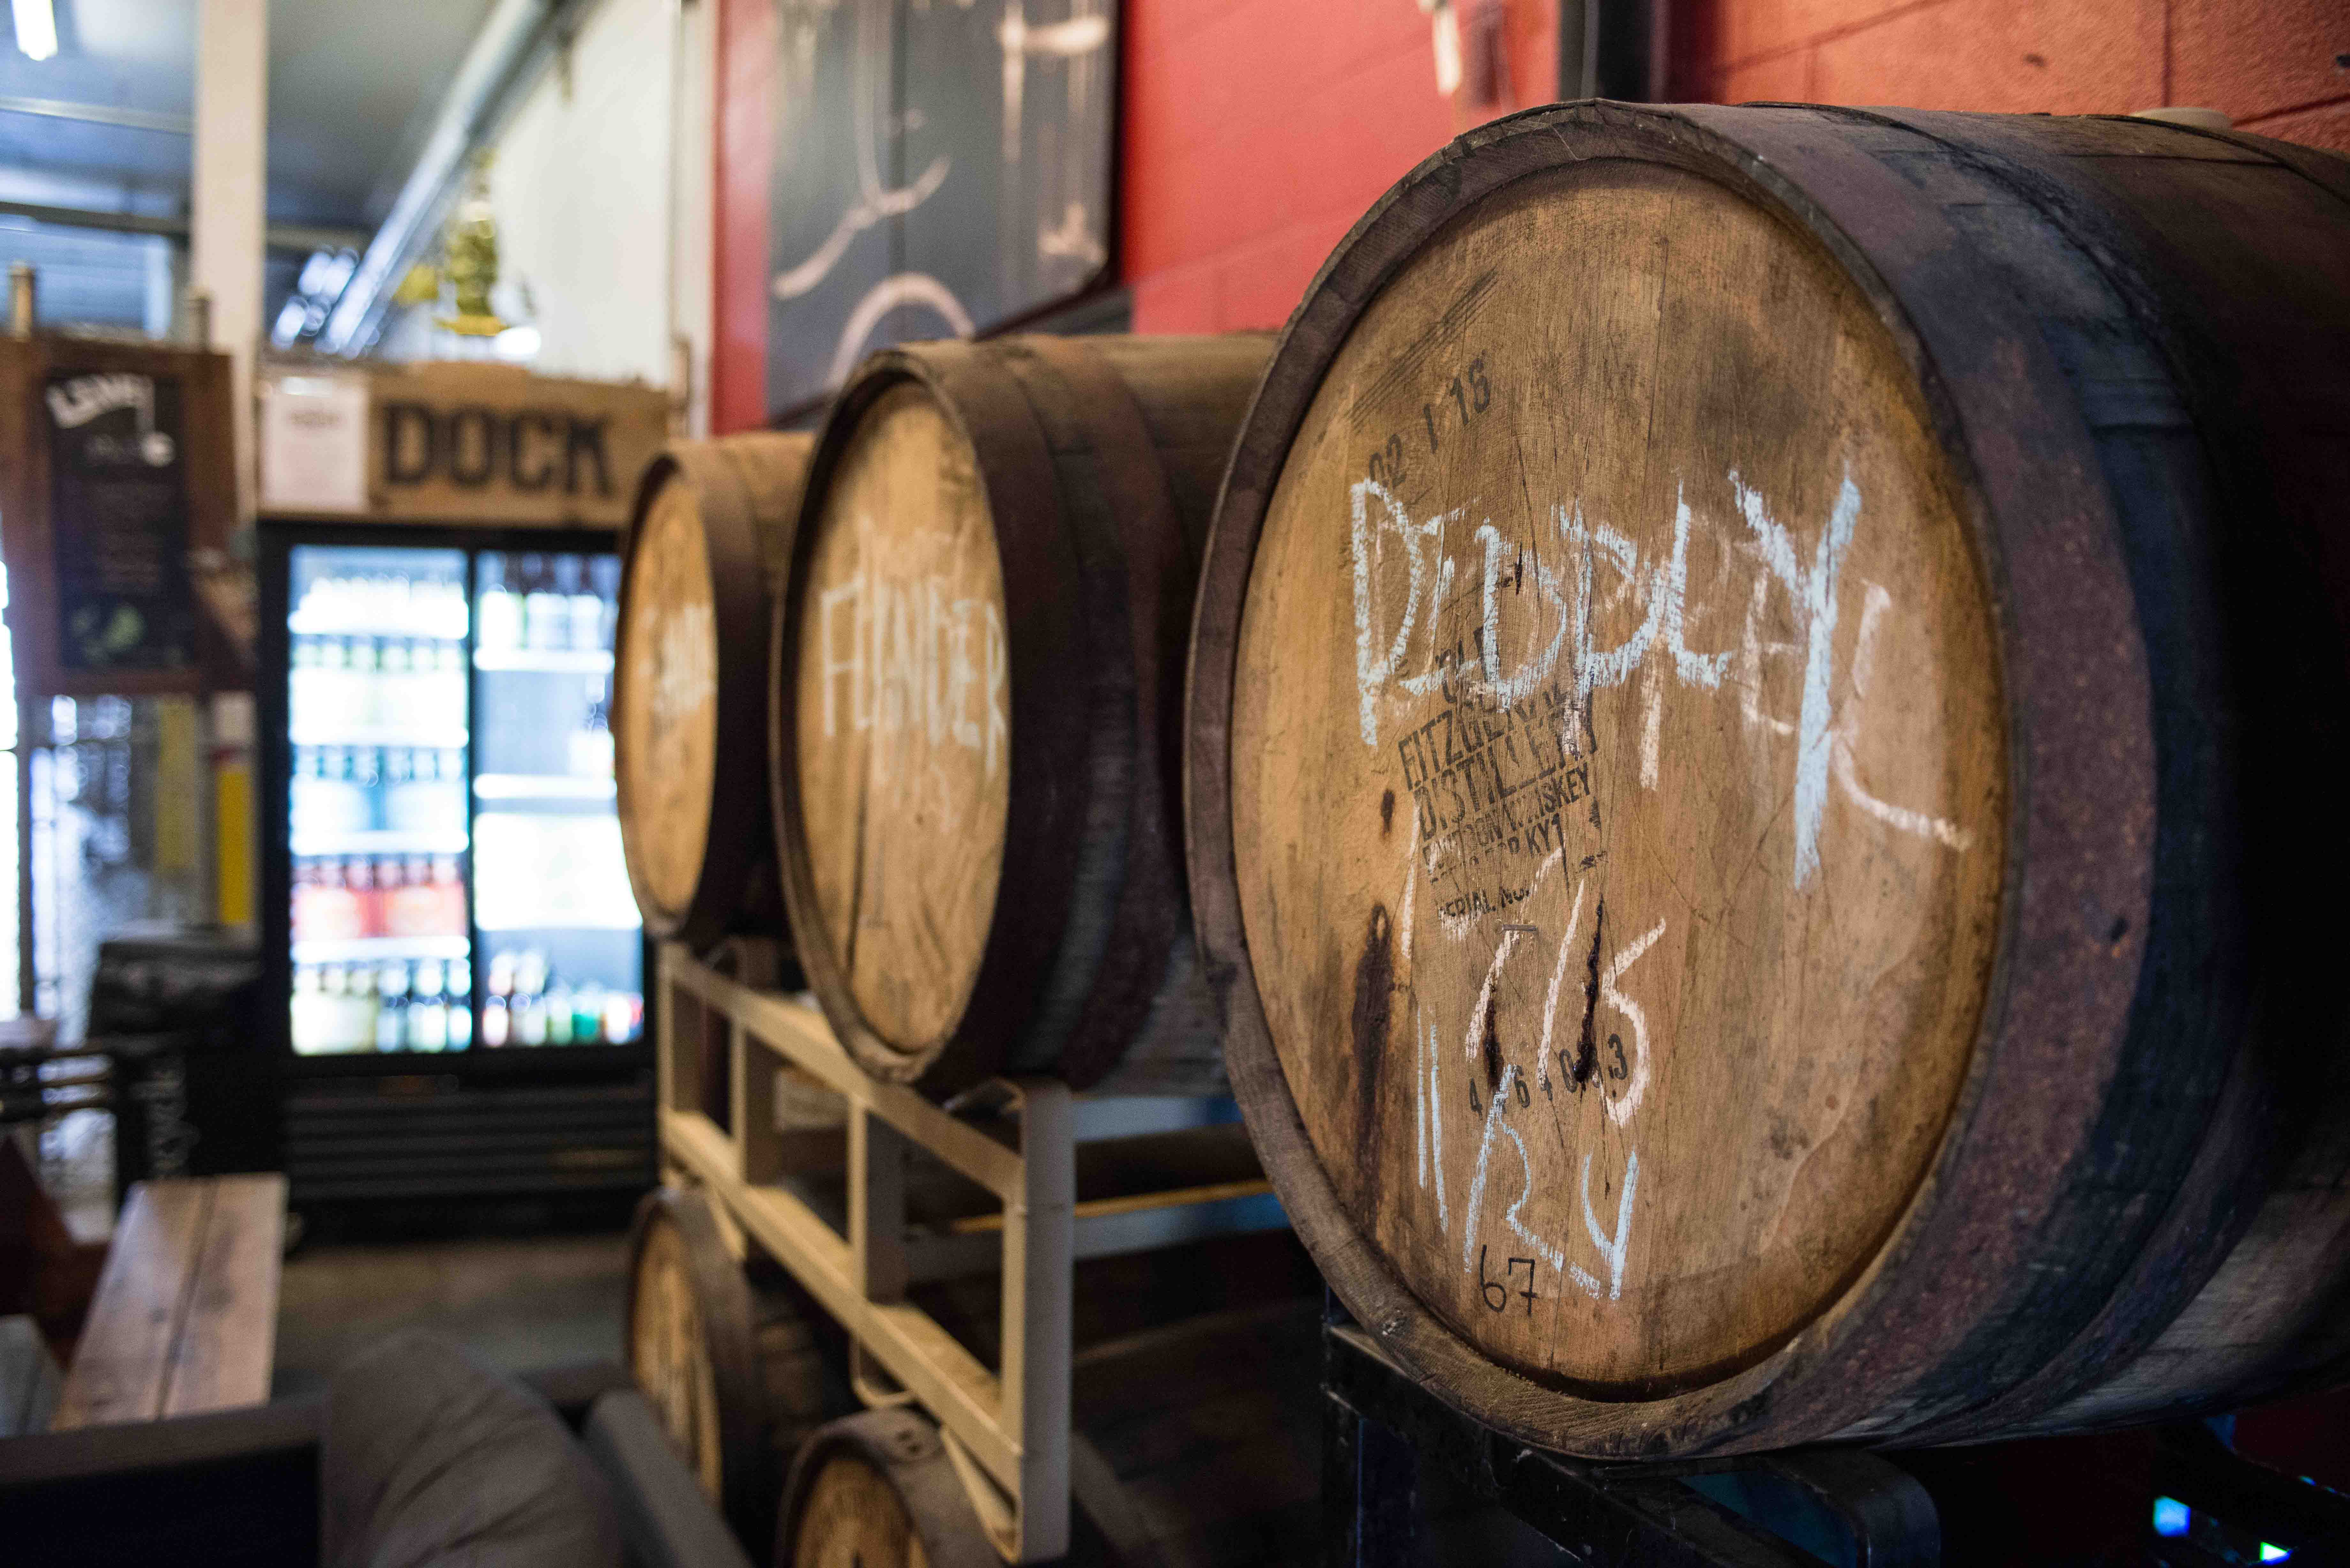 Barrel-aged beer, sours, bourbon